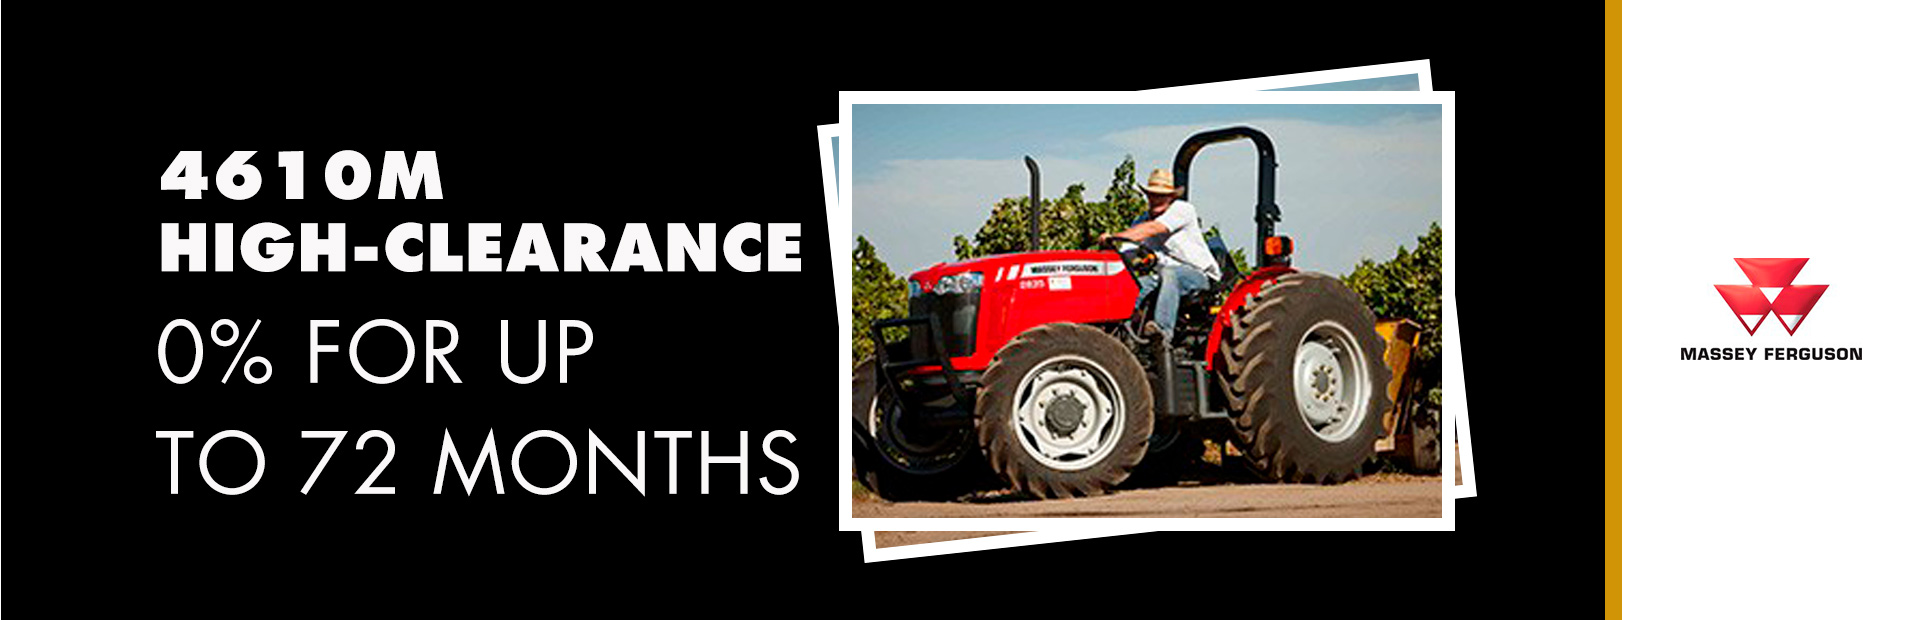 Massey Ferguson: 4610M High-Clearance - 0% for up to 72 Months